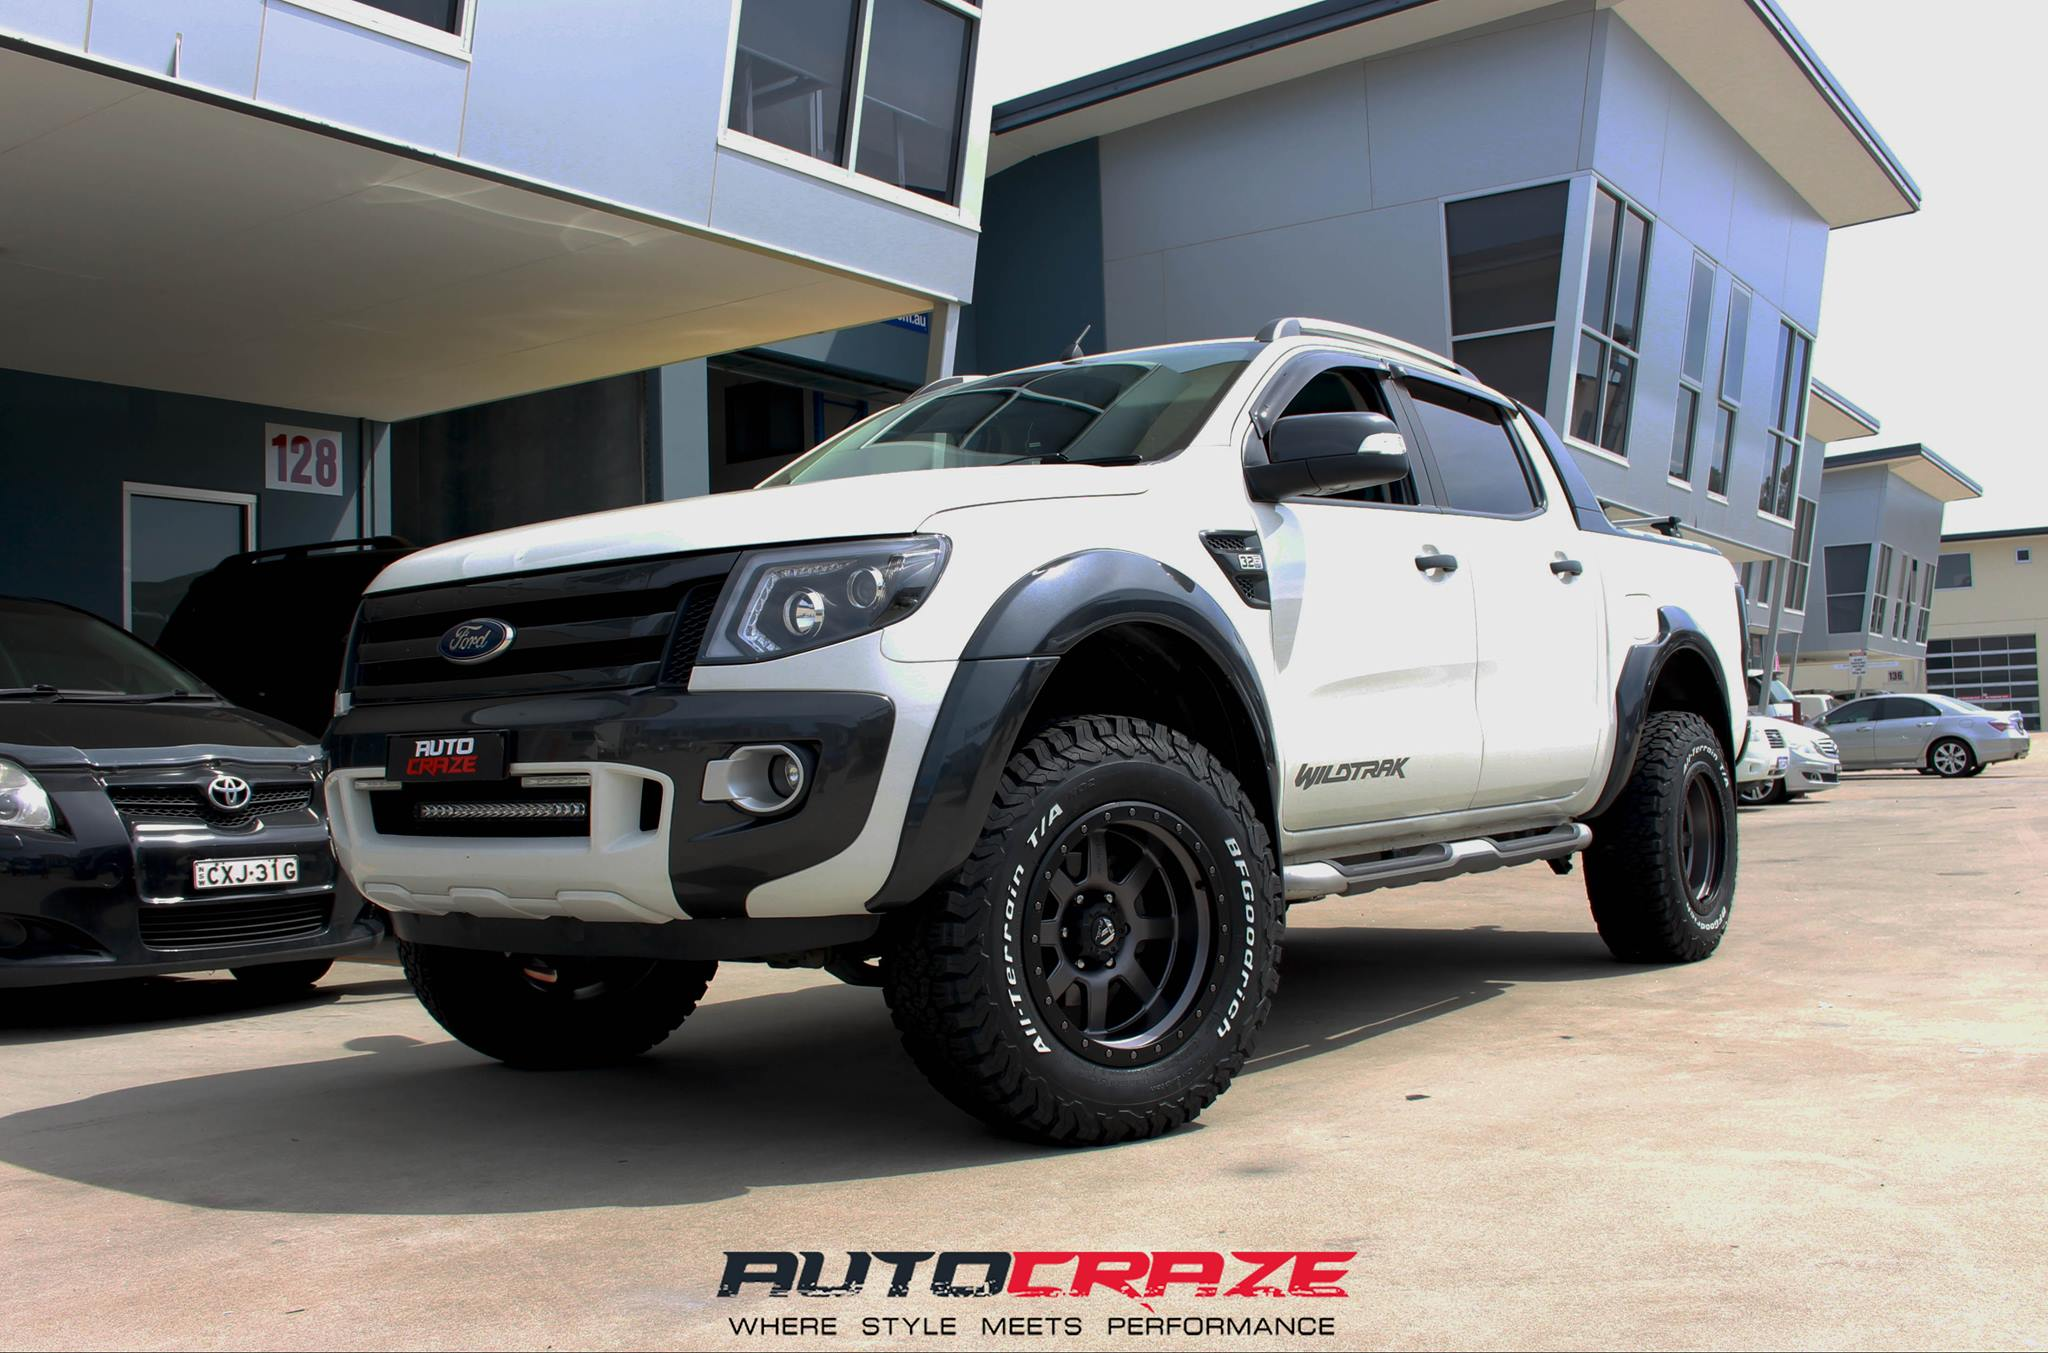 ford ranger rims 4x4 off road wheels autocraze. Black Bedroom Furniture Sets. Home Design Ideas